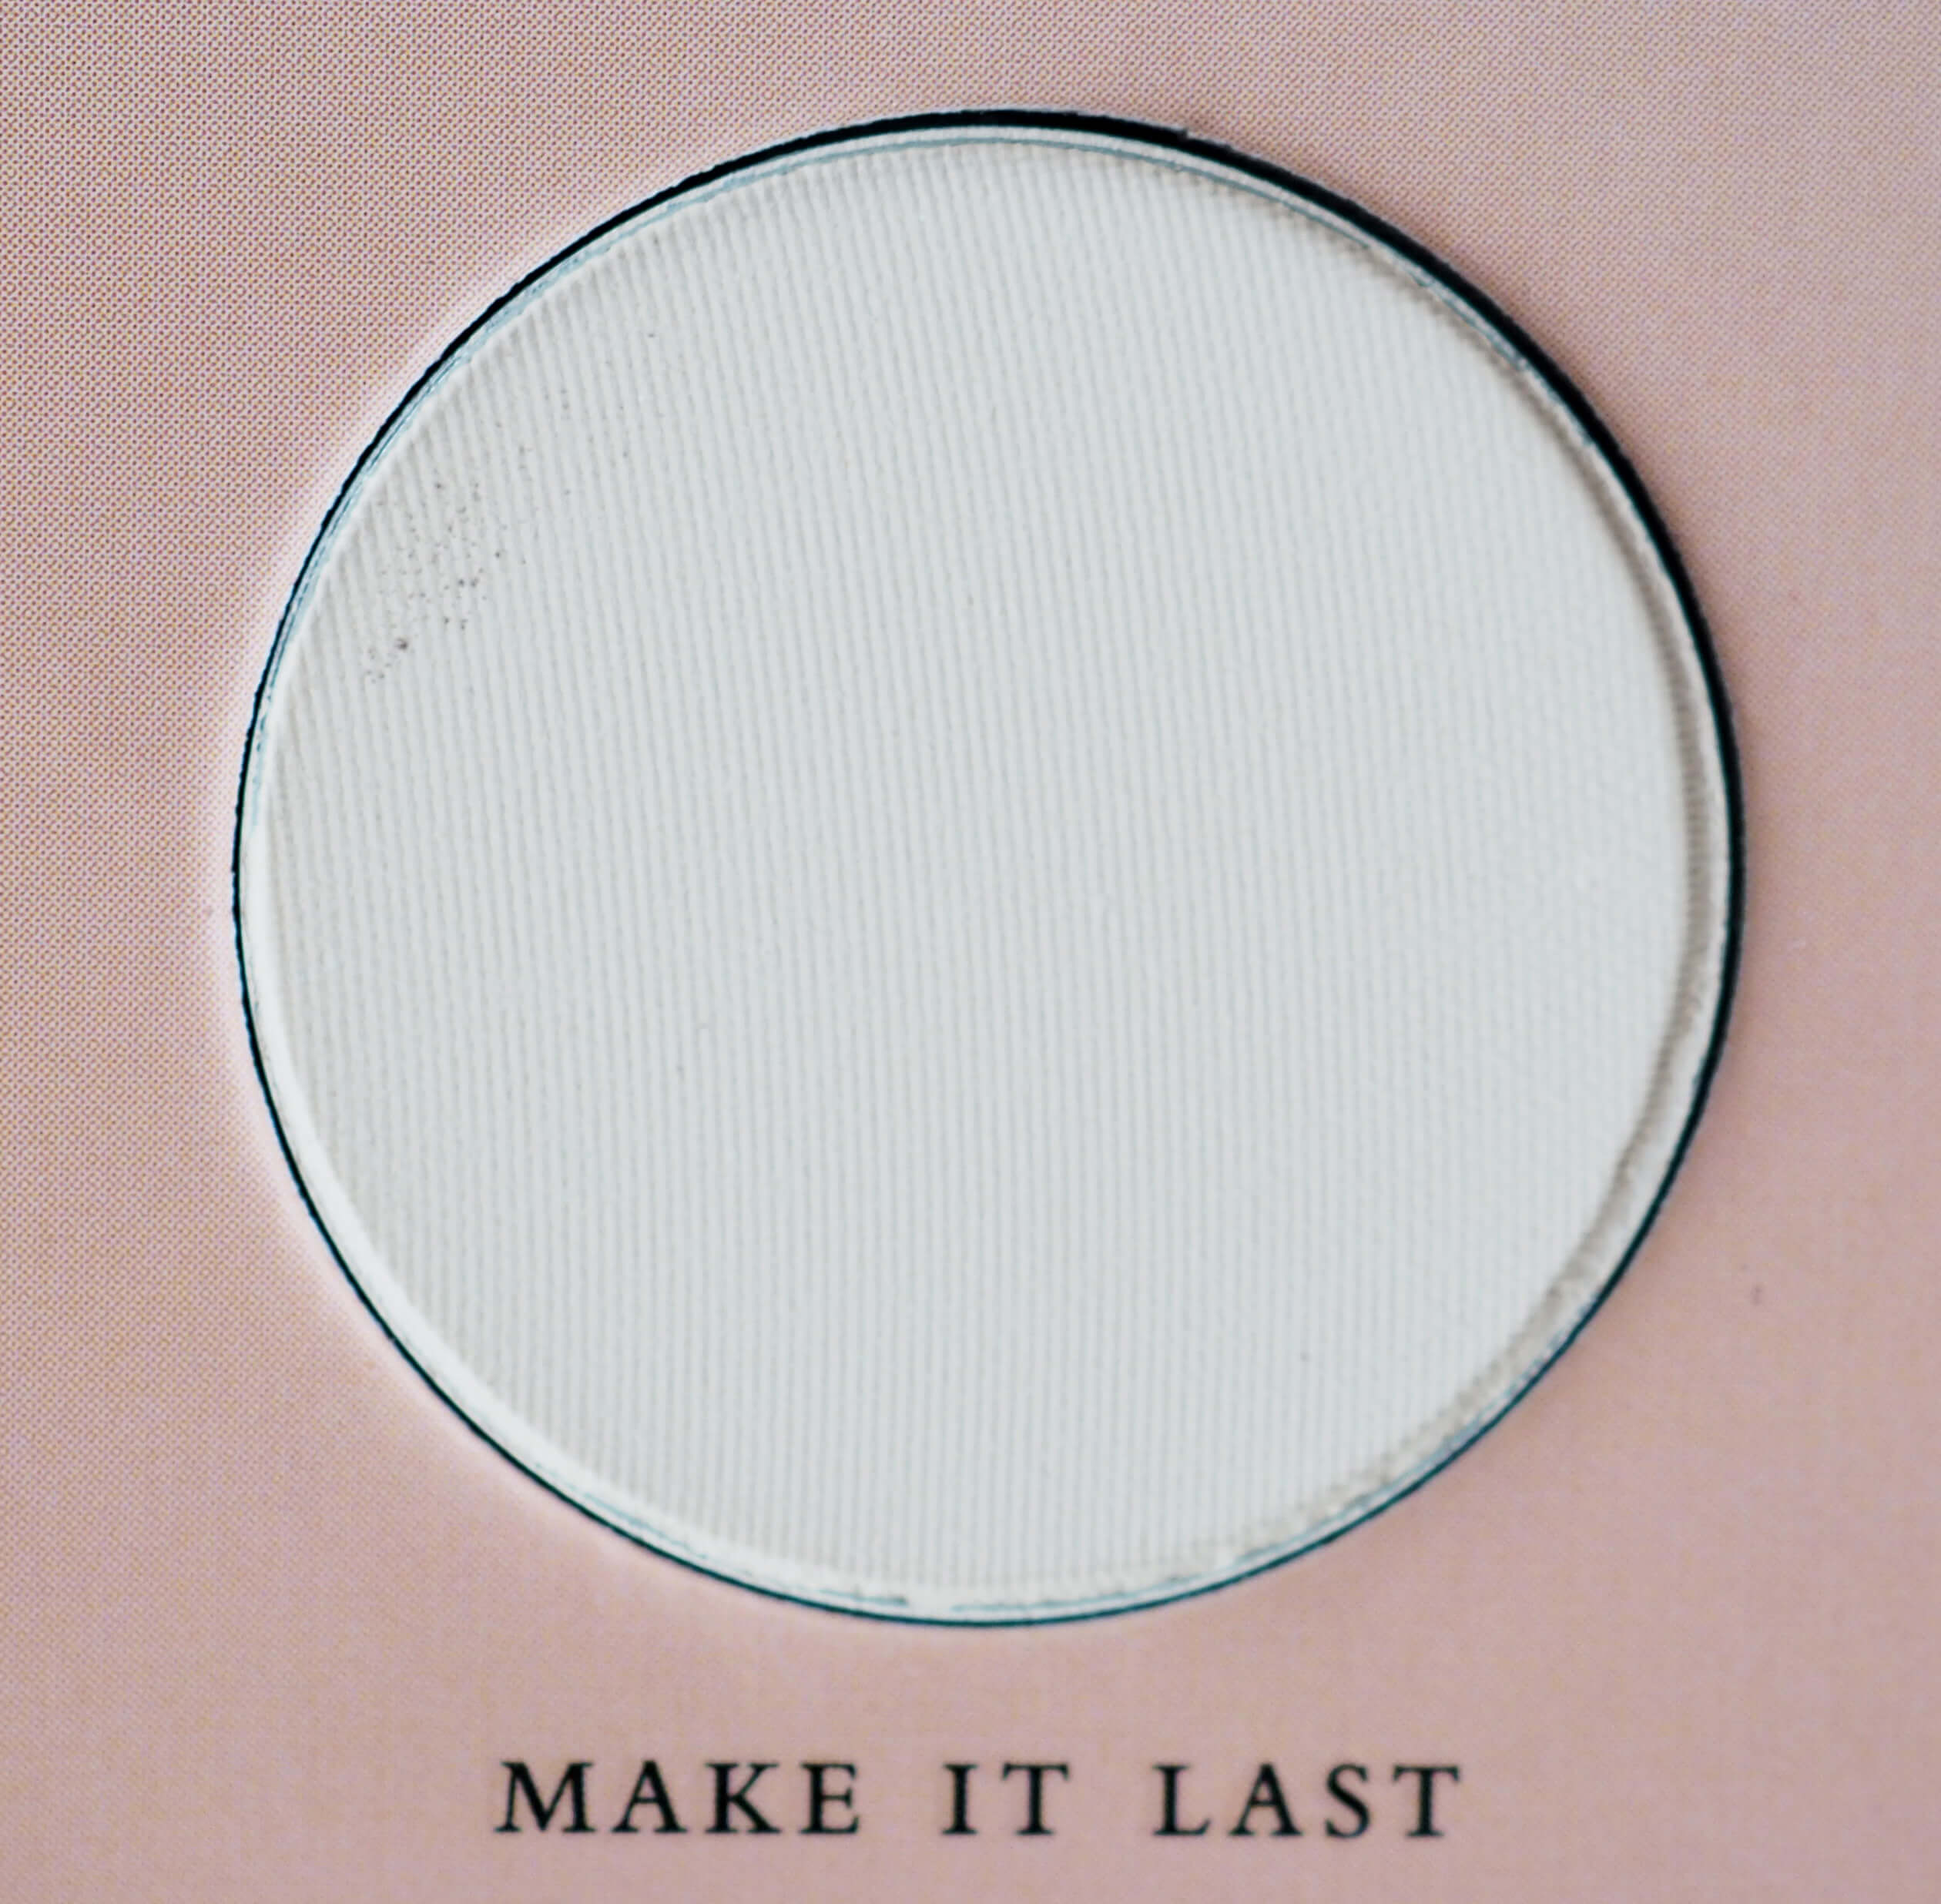 MAKE IT LAST ZOEVA THE BASIC MOMENT PALETTE